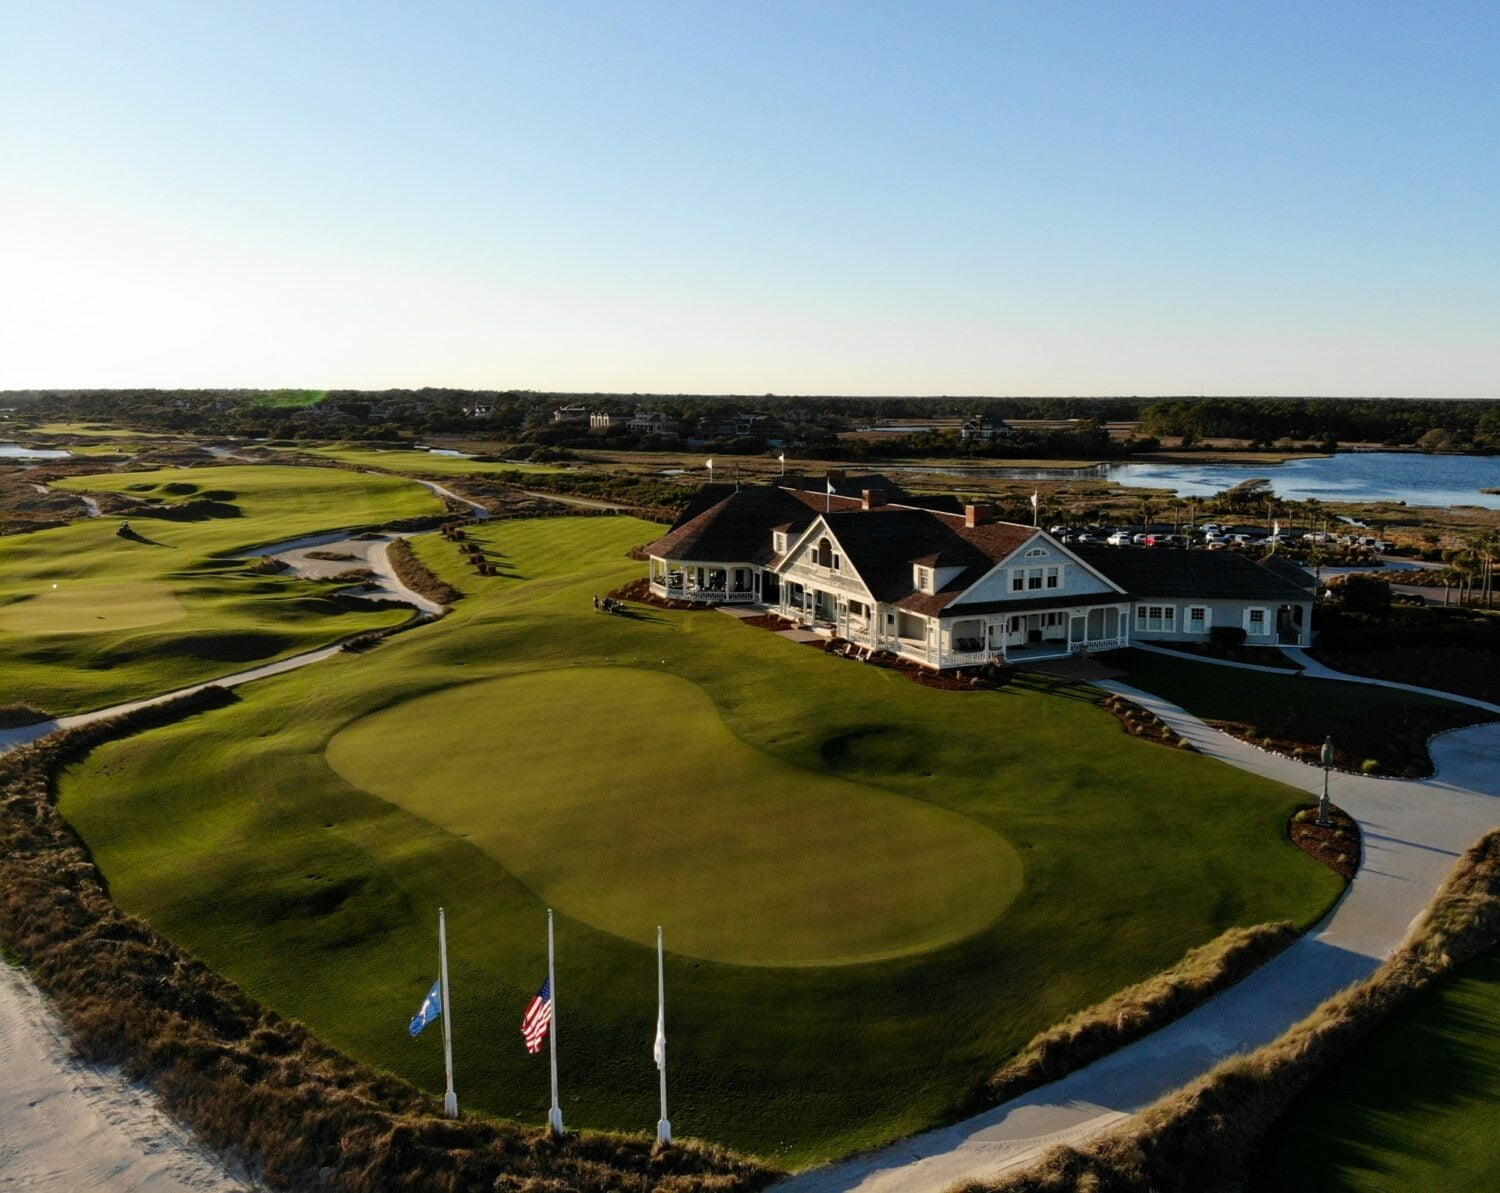 The Ocean Course Clubhouse at Kiawah Island Resort